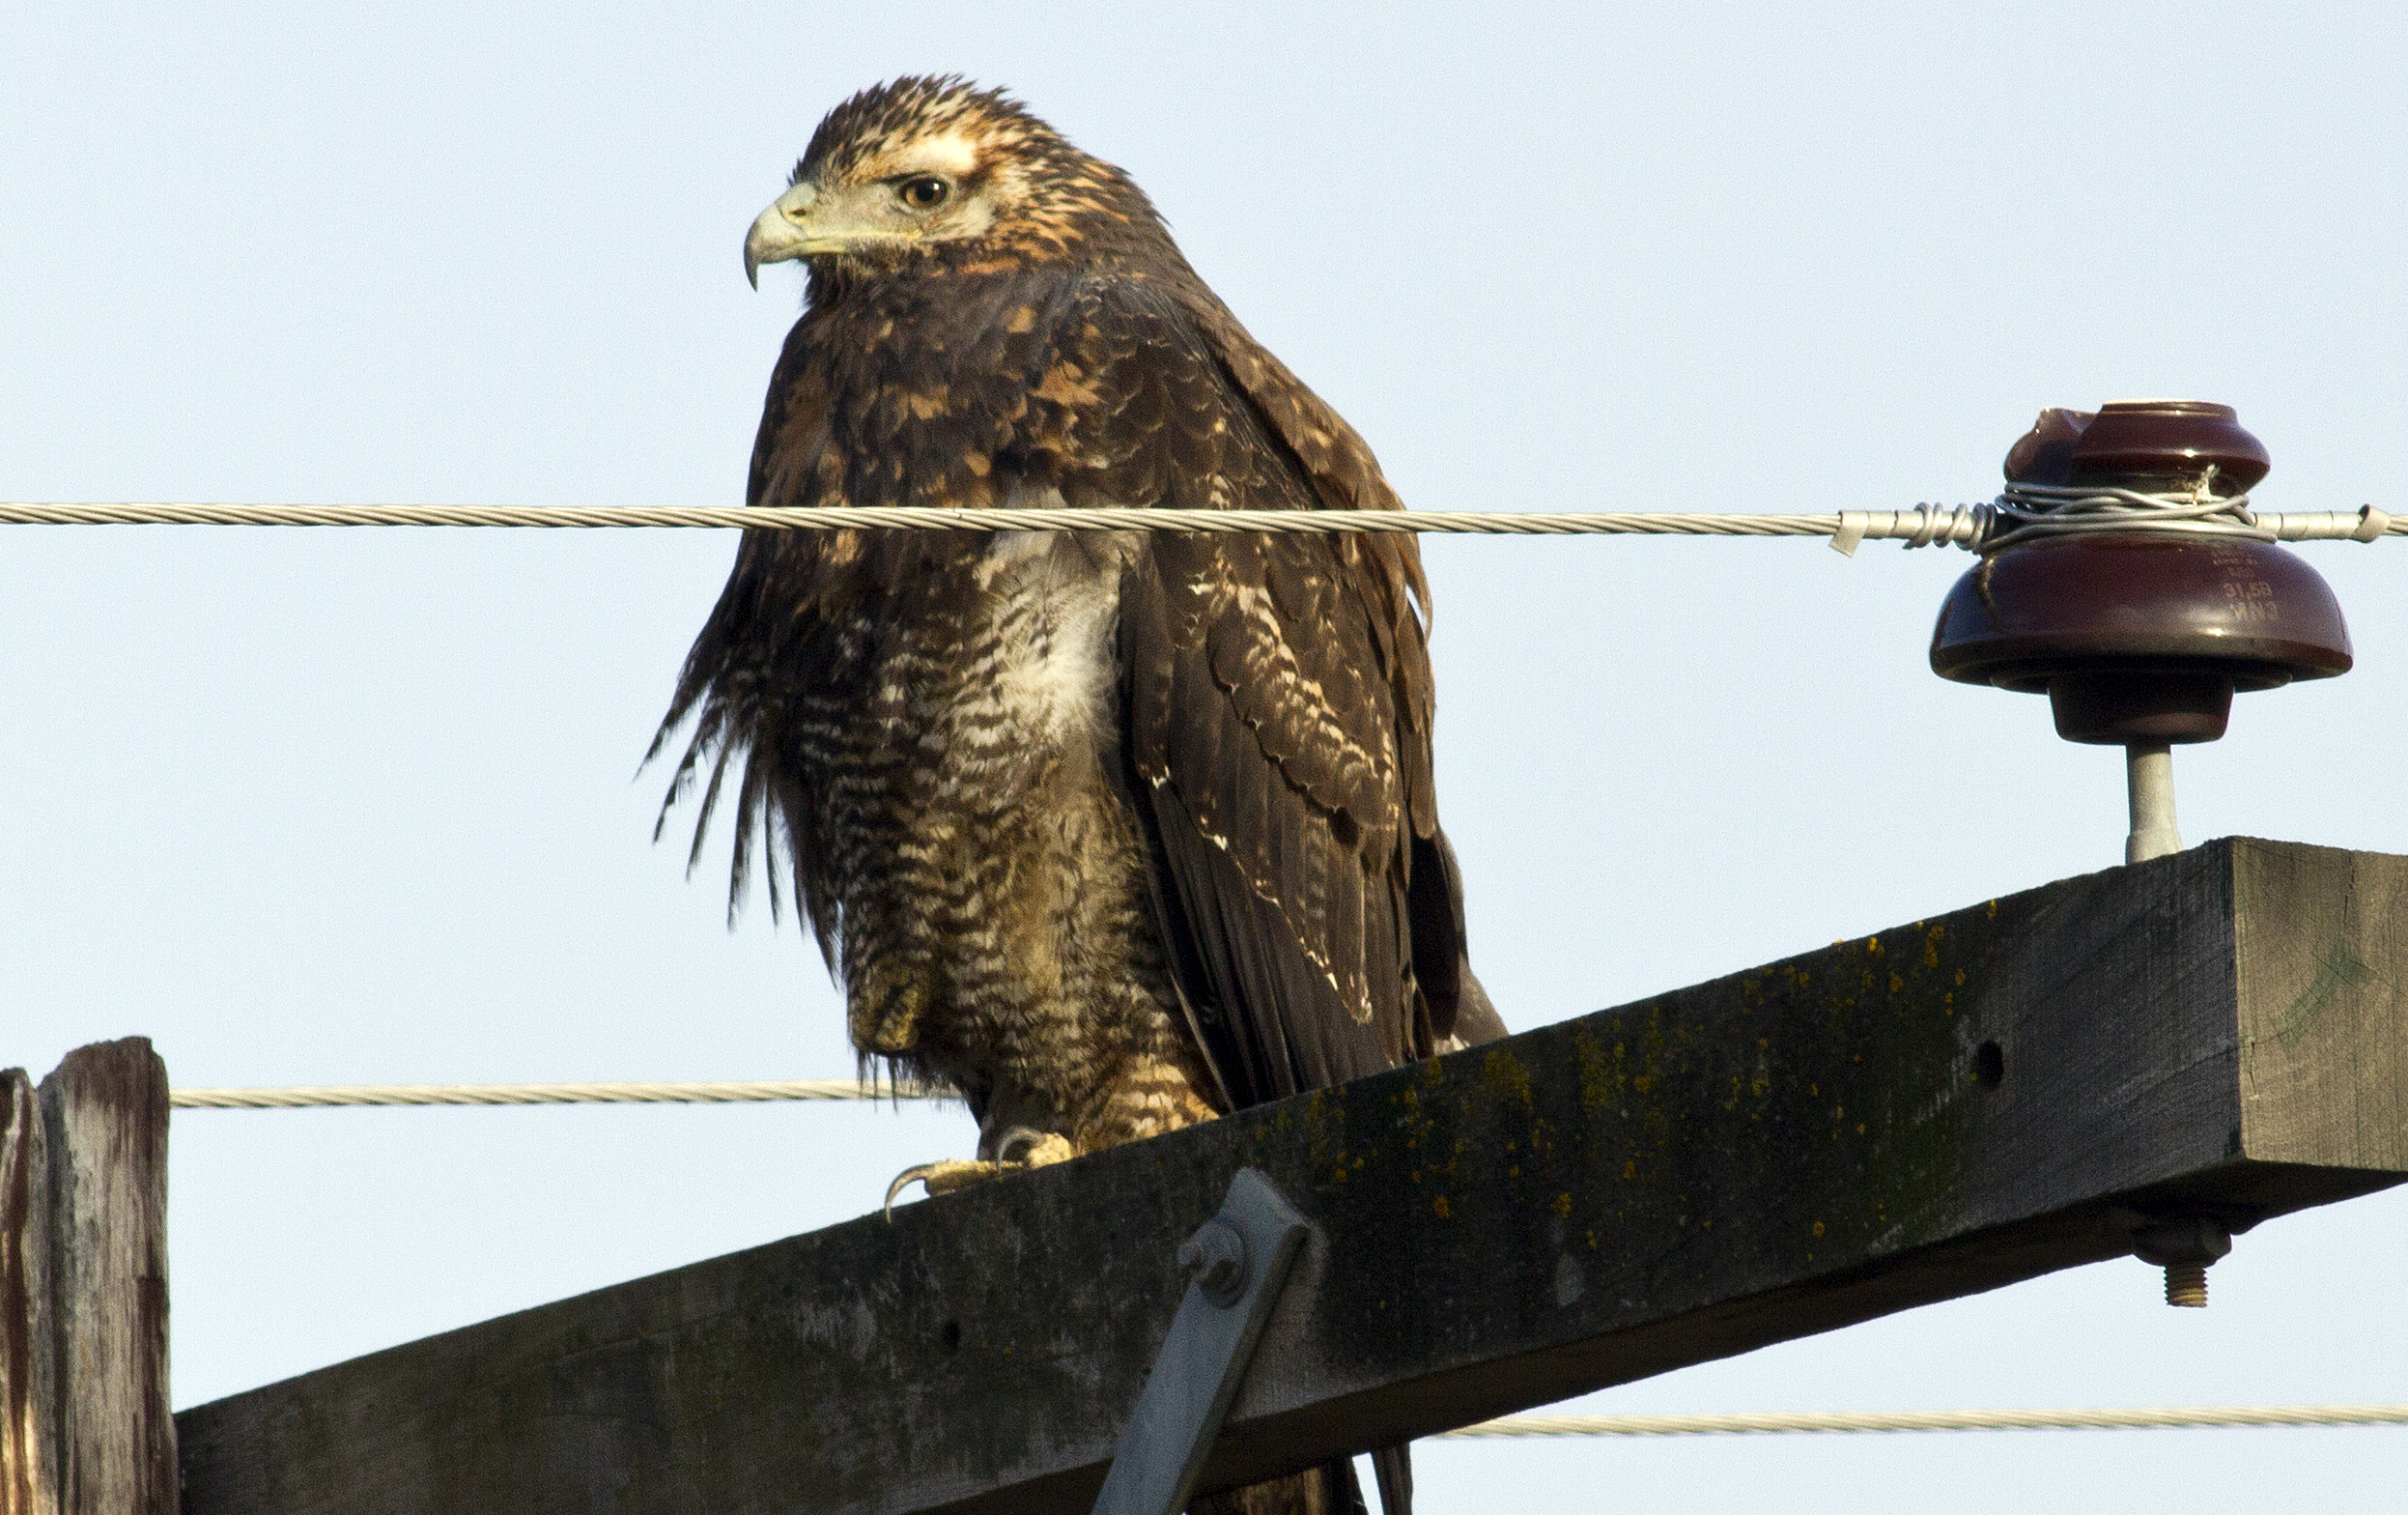 Juvenile Black-chested buzzard eagle